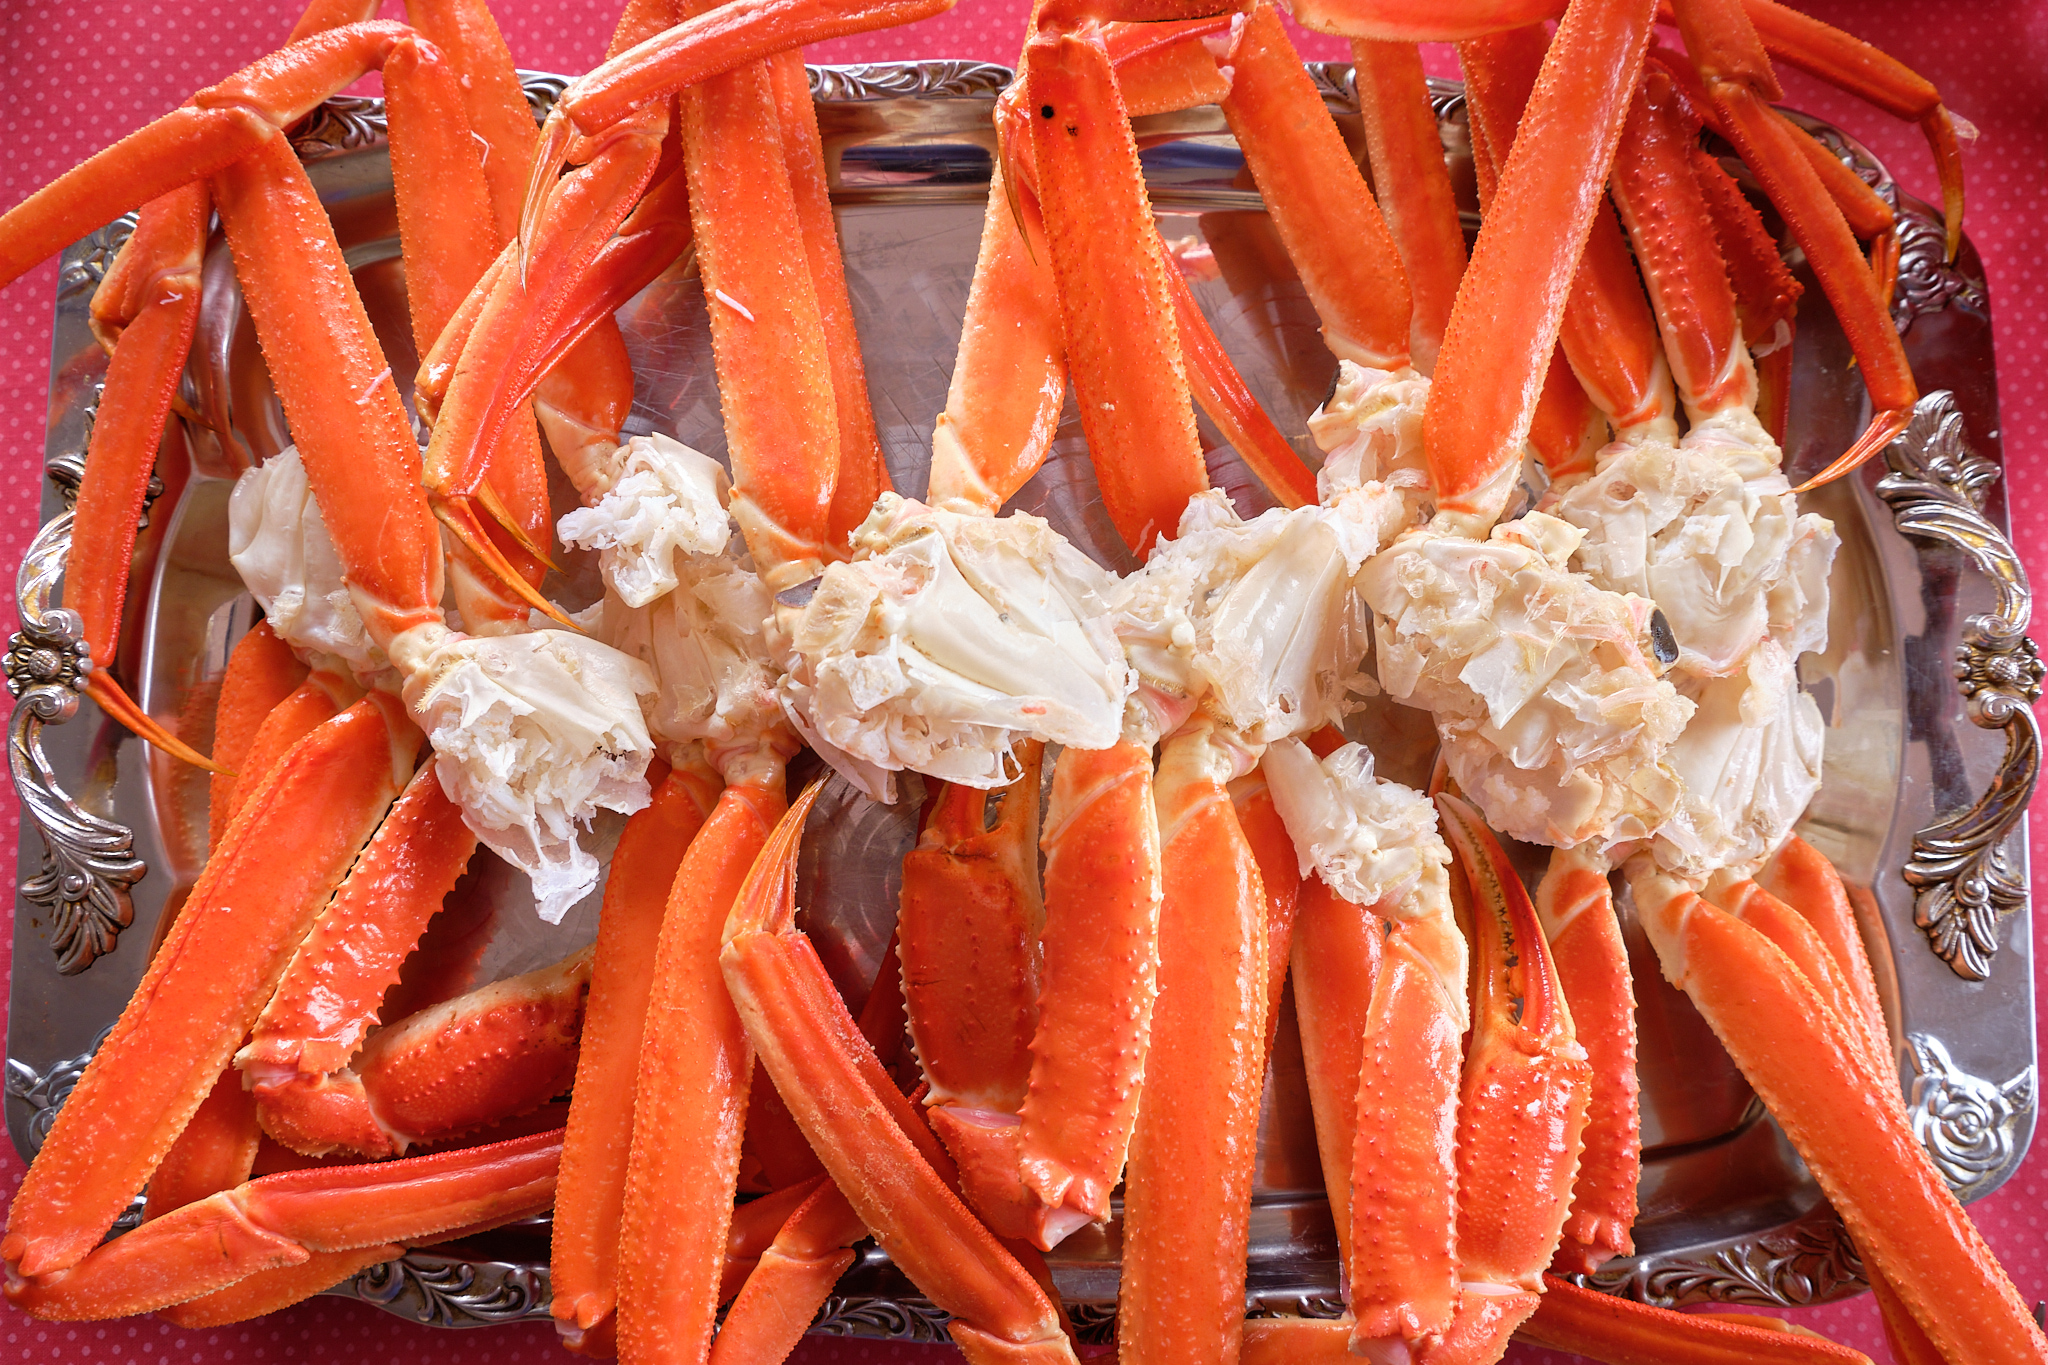 snow-crab for lunch at sassannguit near Sisimiut - Greenland